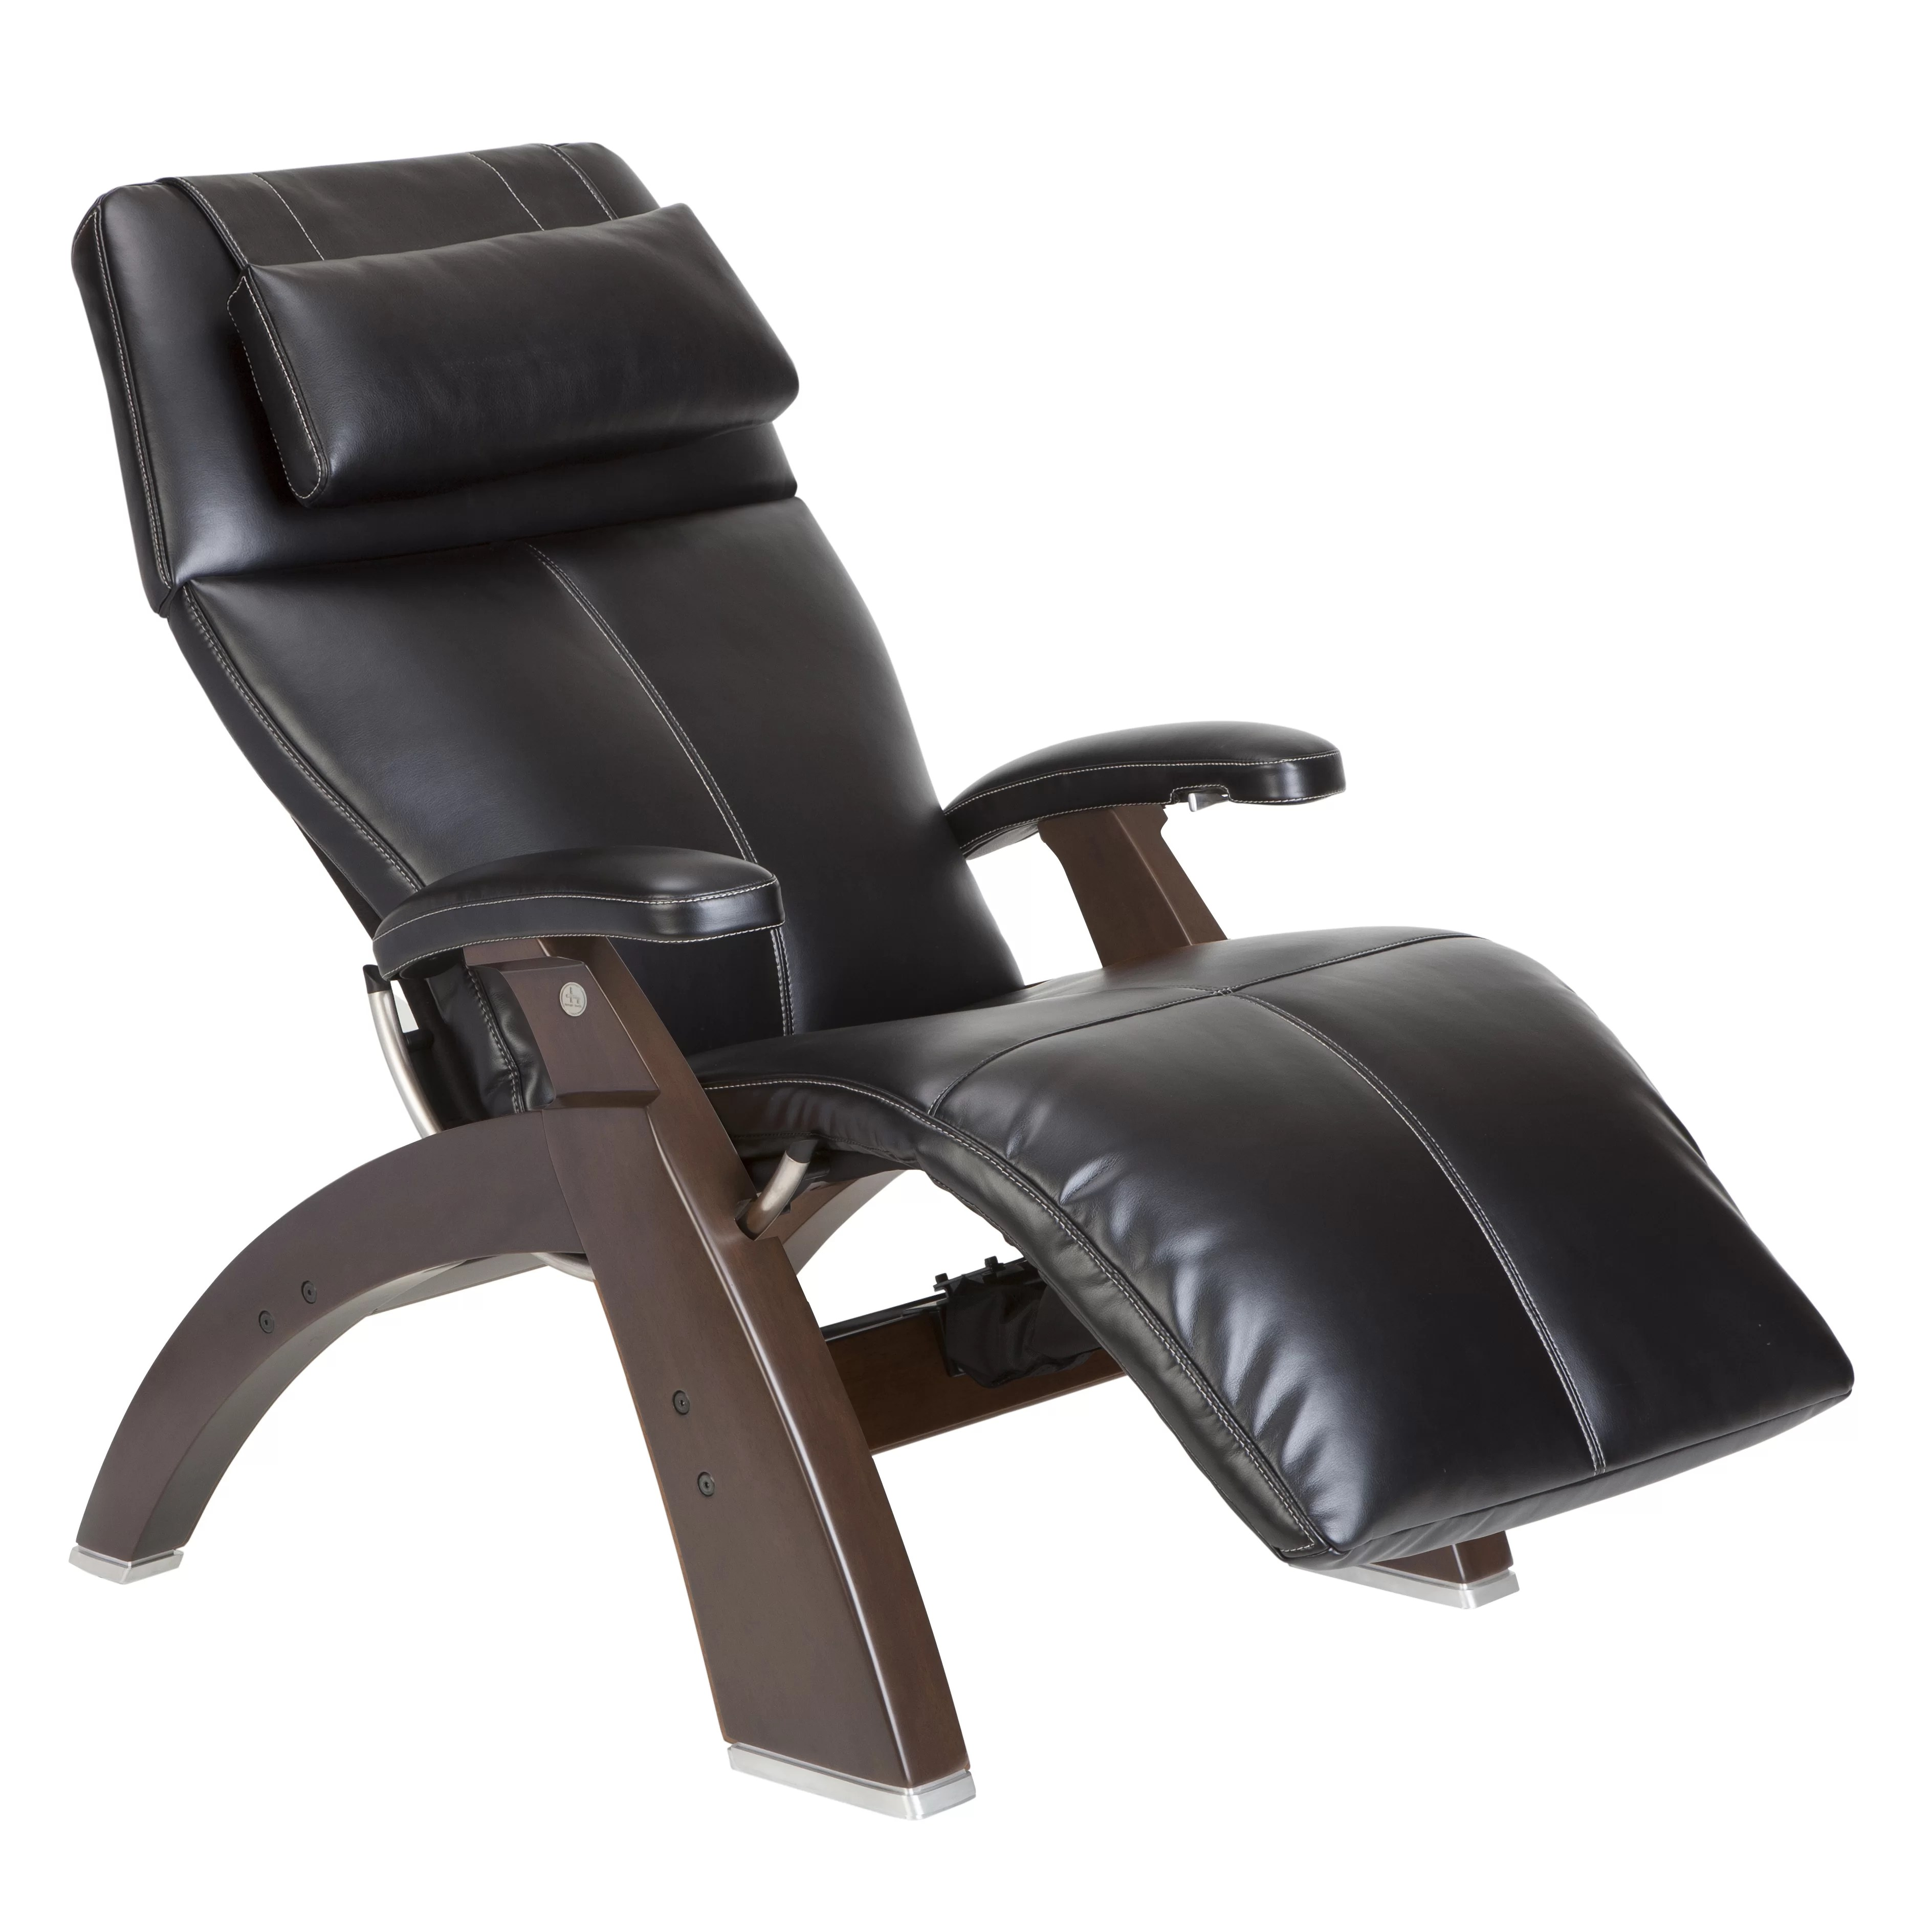 human touch chairs comfortable chair for bedroom perfect quotpc 500 quot silhouette leather zero